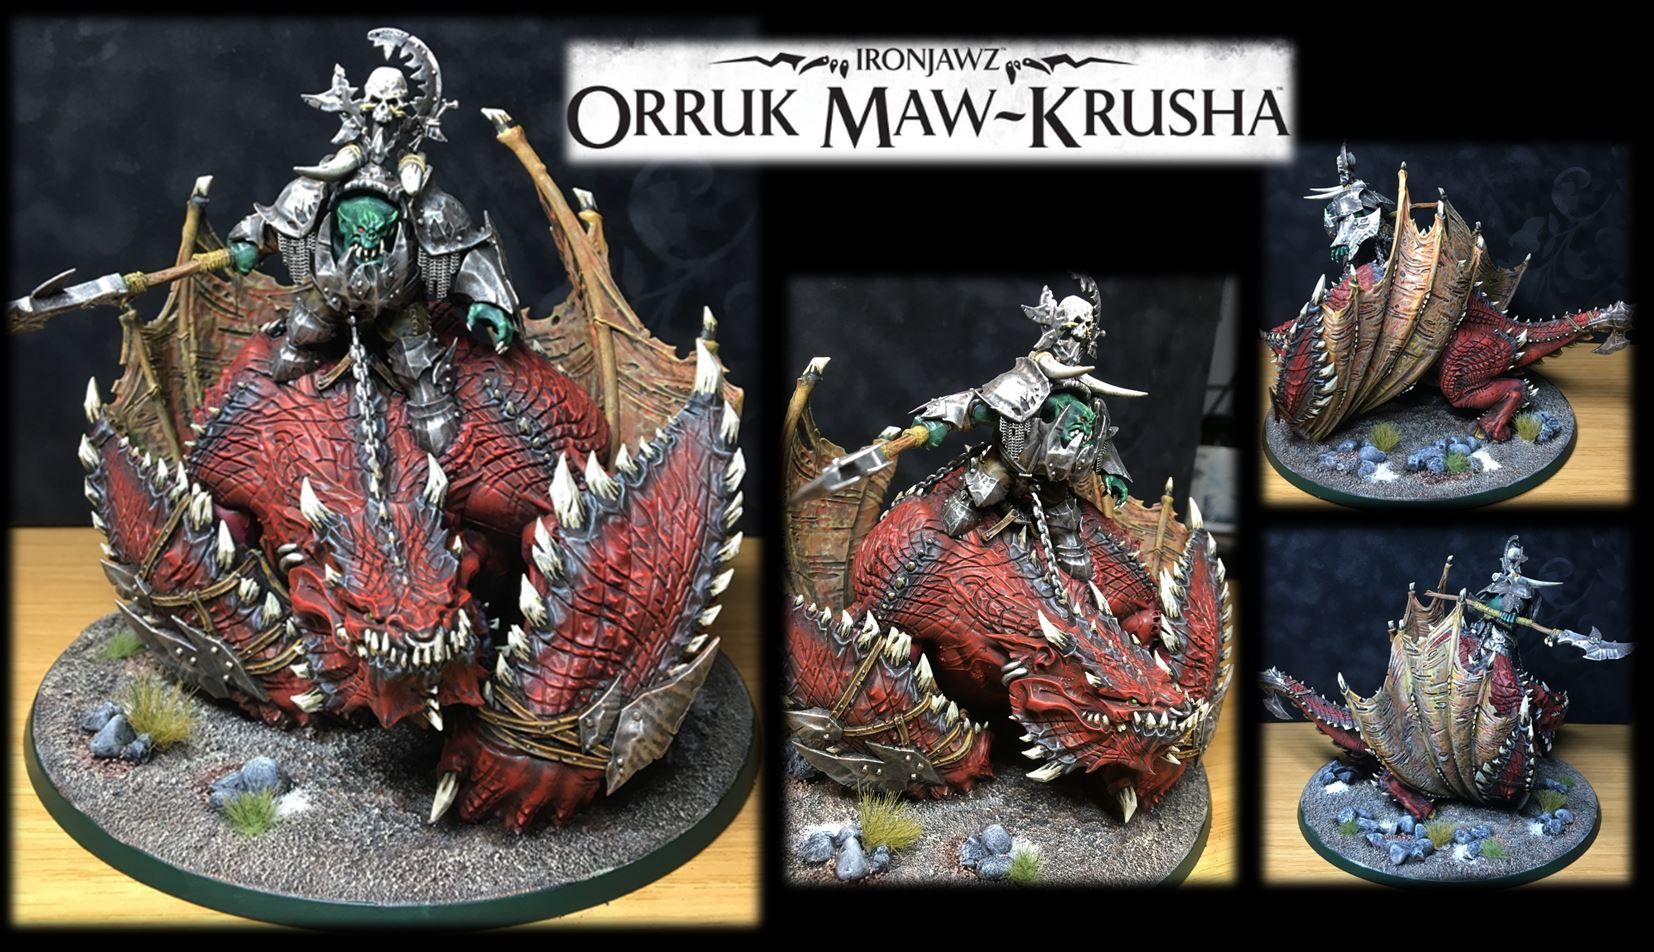 Orruk Mega-Boss on Maw-Krusha (Ironjawz)